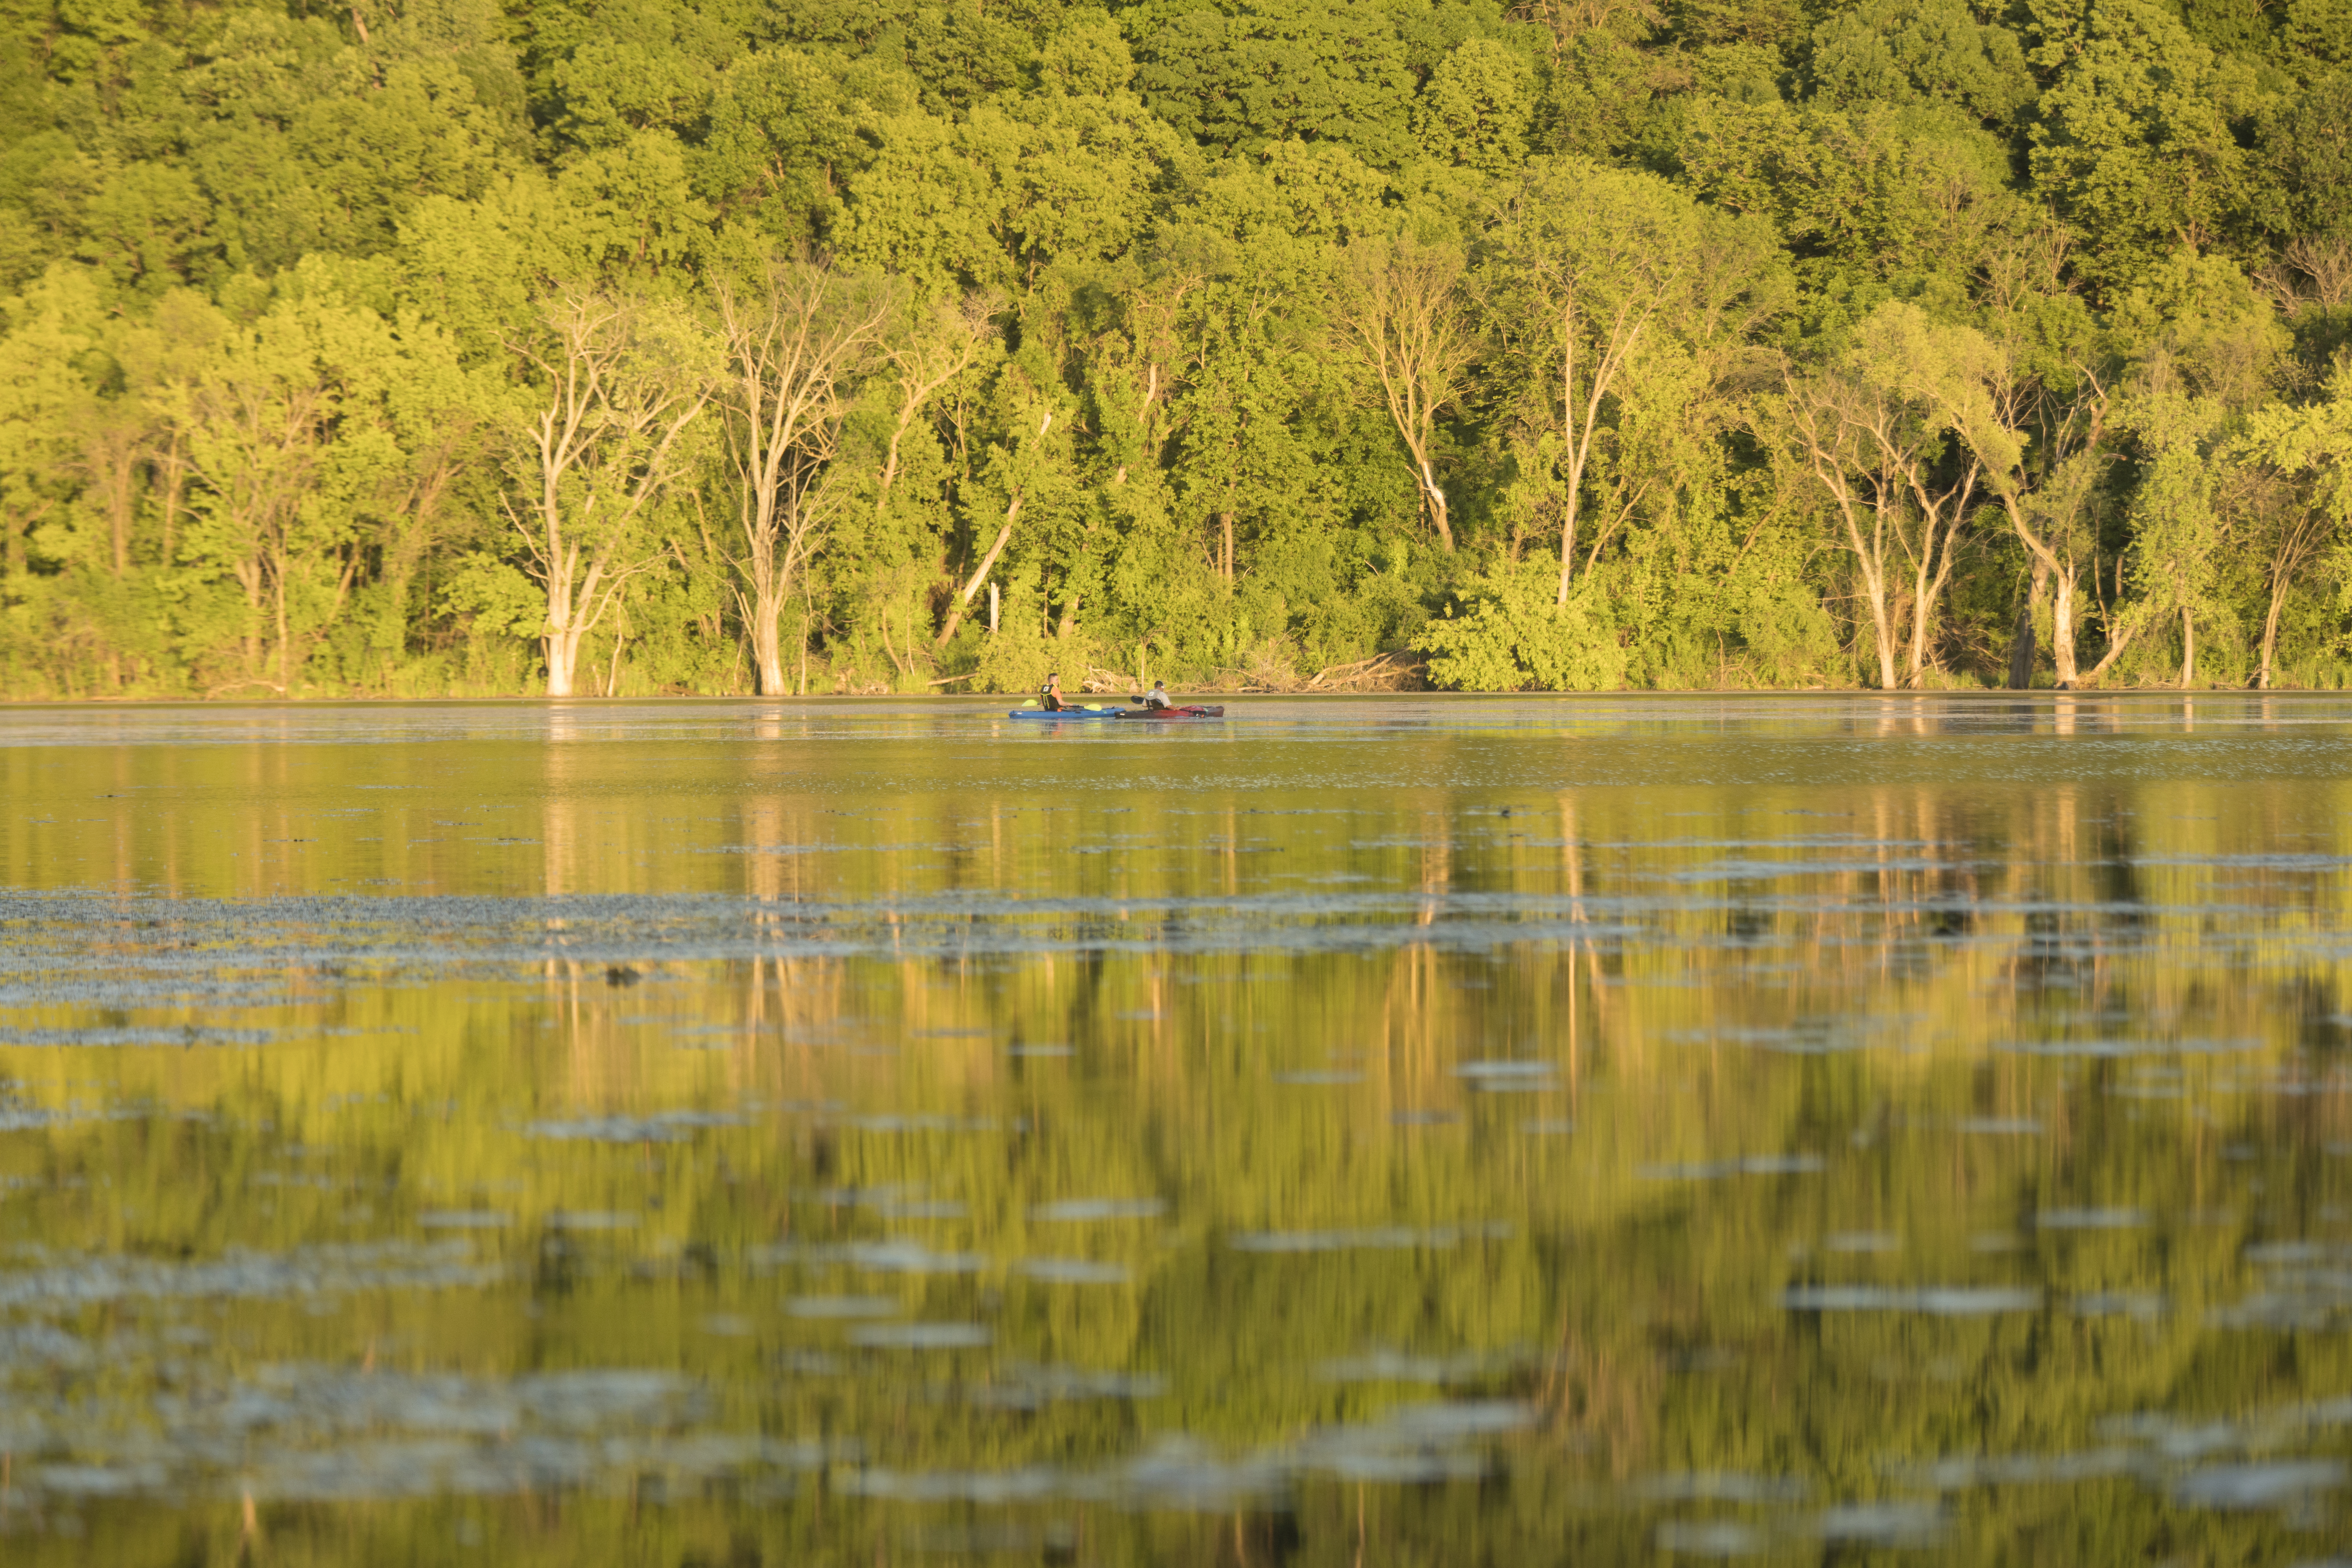 Pickerel Lake. A canoe appears in the lake with two passengers, and reflections of trees appear in the lake. Photographer Chris Juhn.